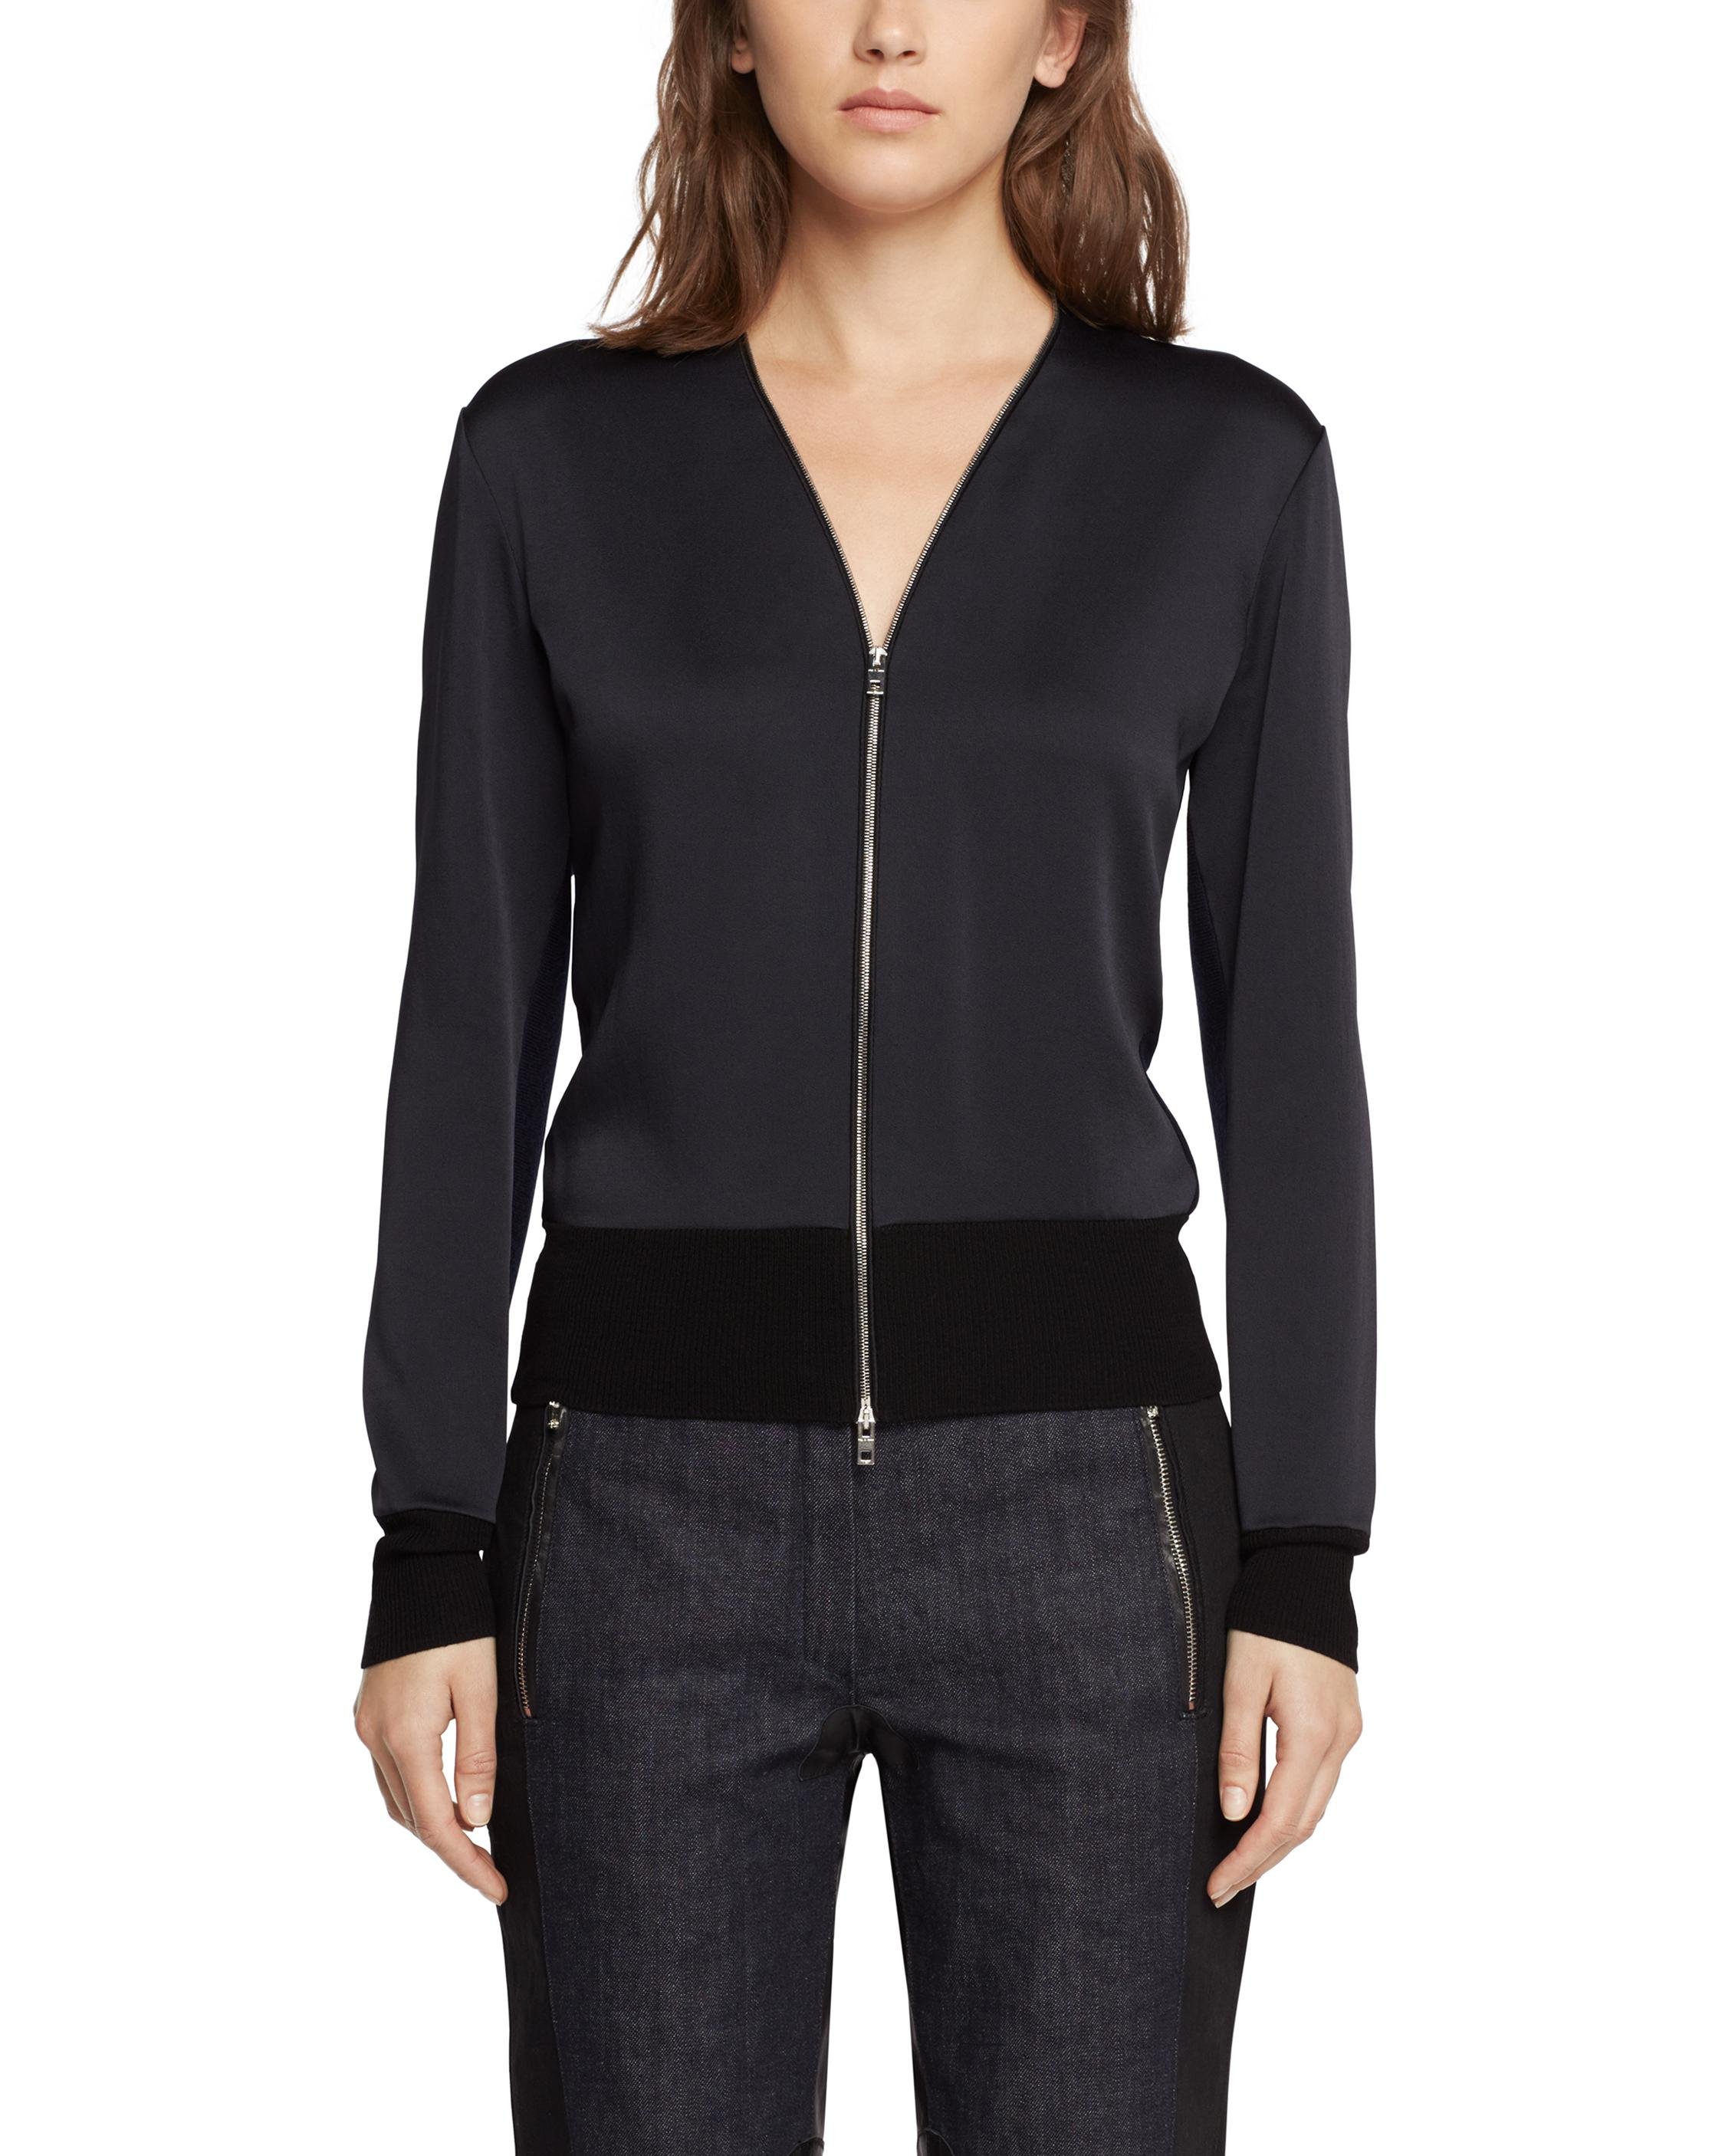 Rag & Bone Long Sleeve Zip-Up Jacket Big Discount Cheap Hot Sale oOzFe1kyZy